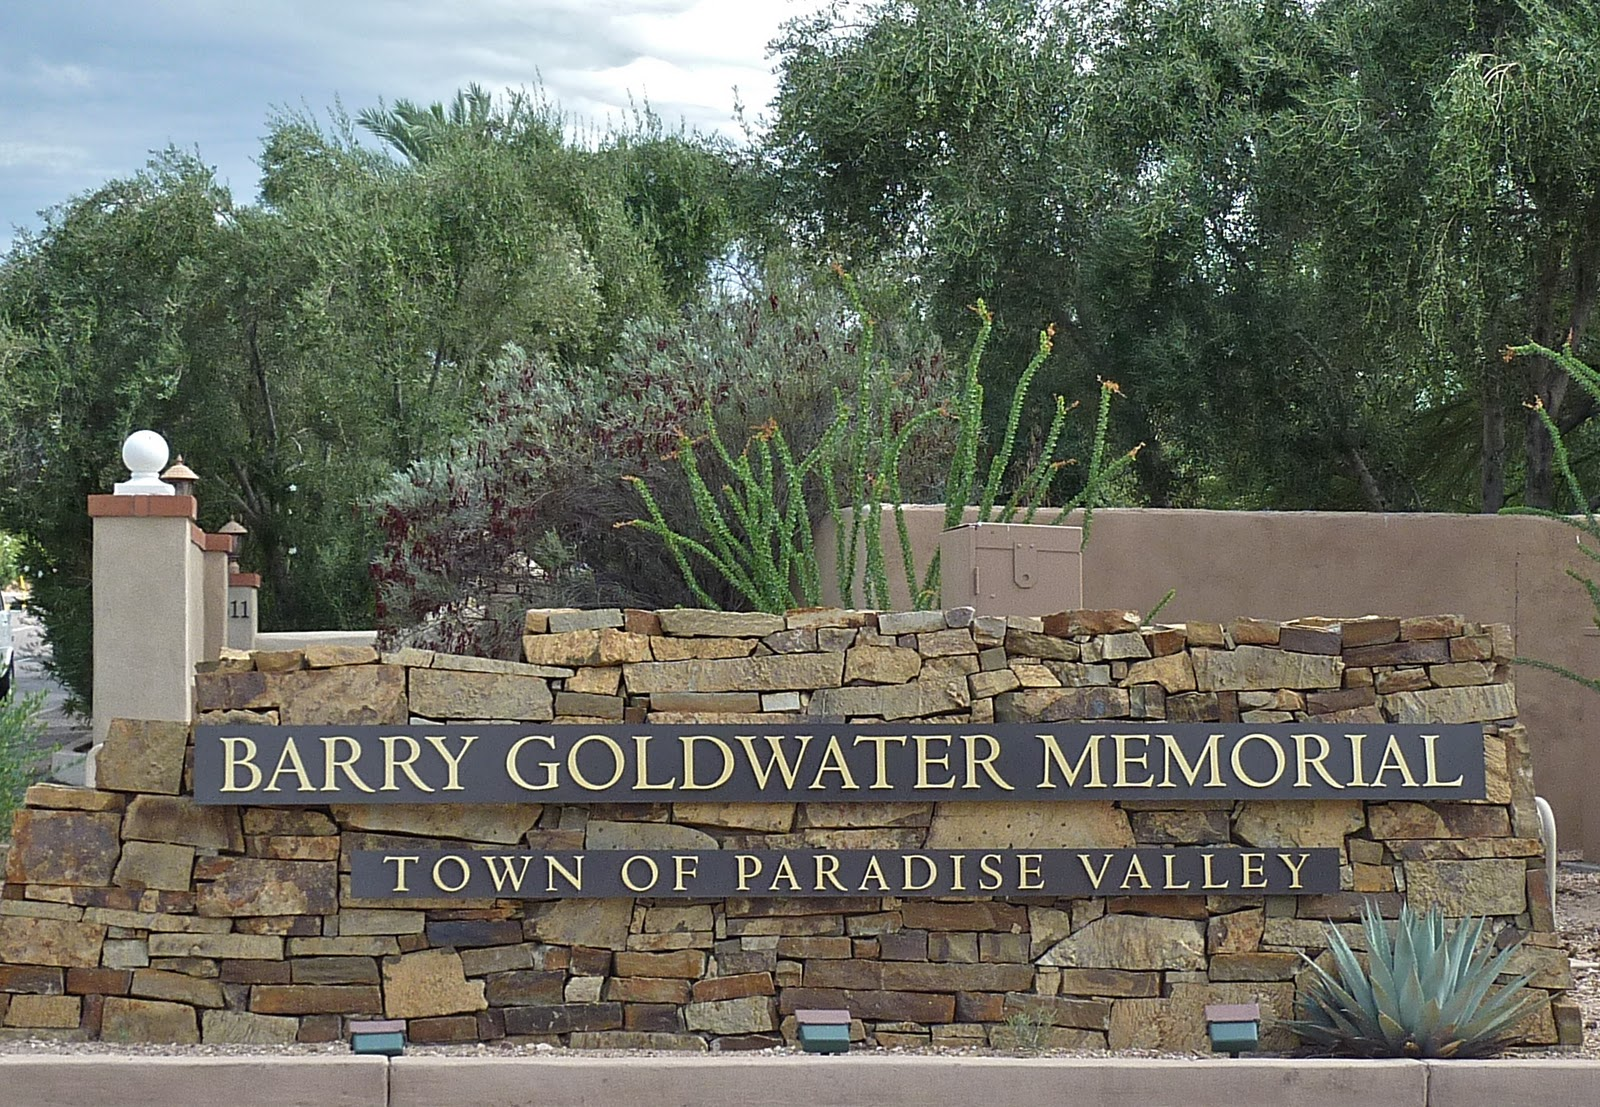 Calling Paradise Valley Home